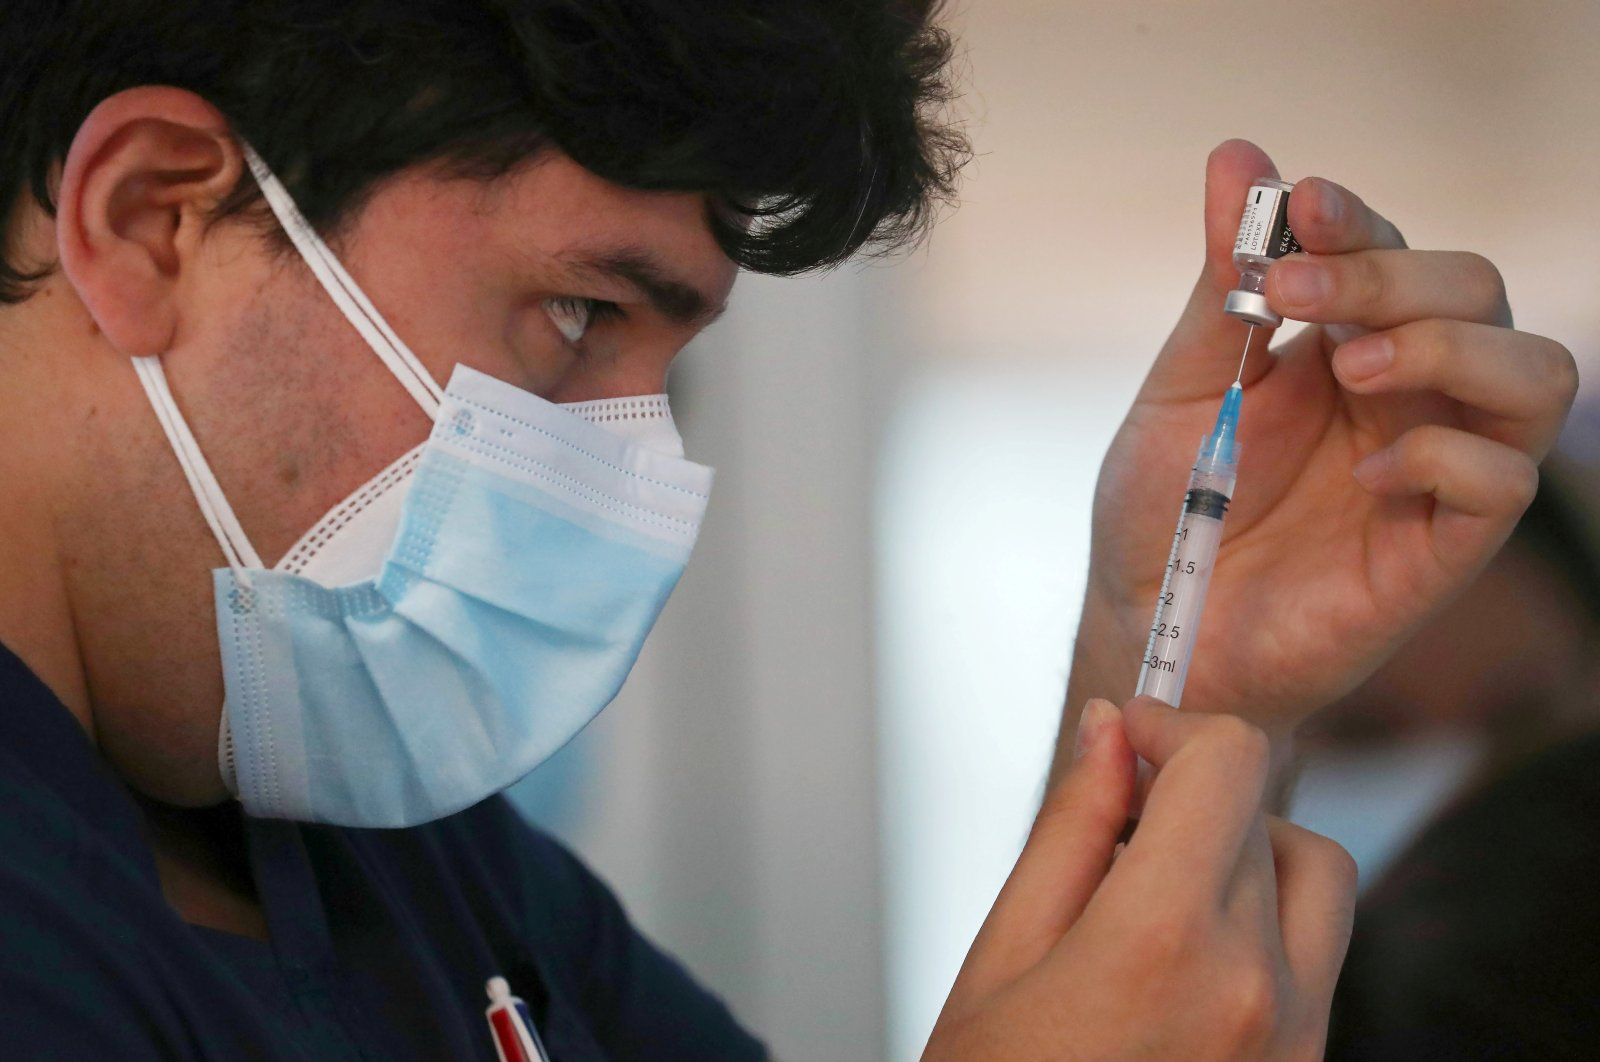 A health care worker prepares a dose of the Pfizer/BioNtech vaccine against the coronavirus disease (COVID-19) at the Posta Central hospital in Santiago, Chile, Dec. 24, 2020. (Reuters Photo)